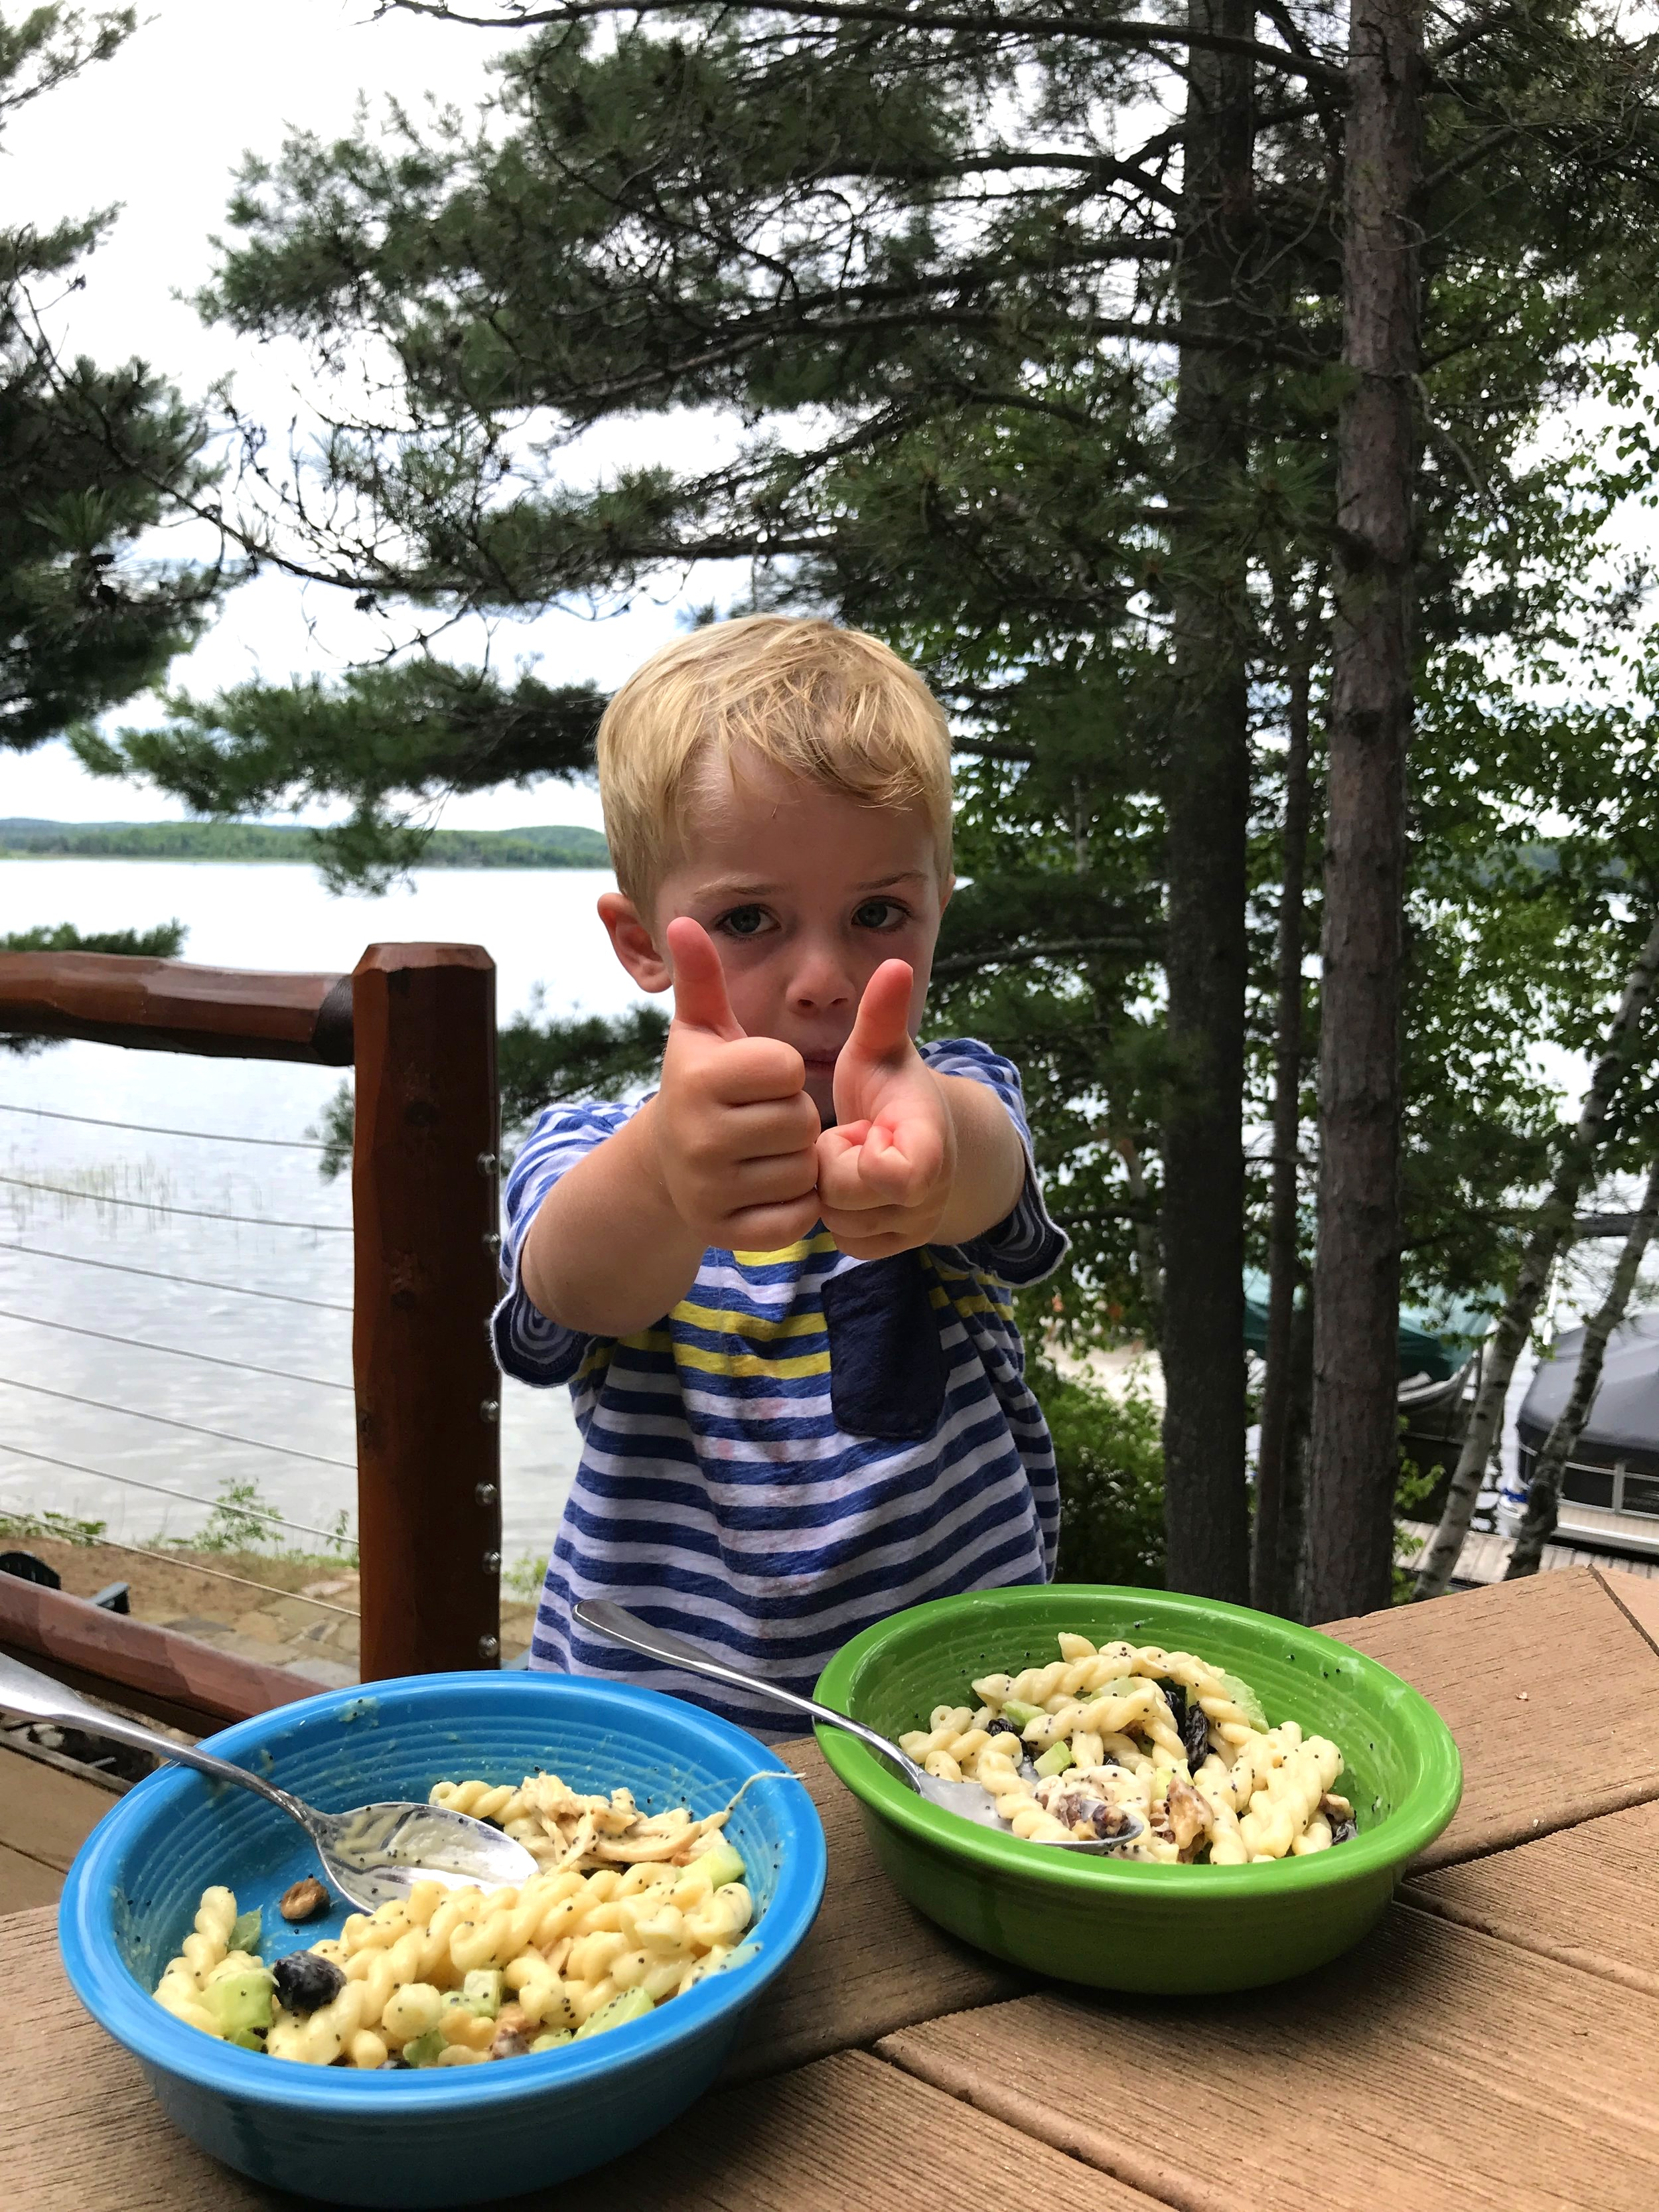 Will is my best little sampler during recipe development. This one is toddler approved!